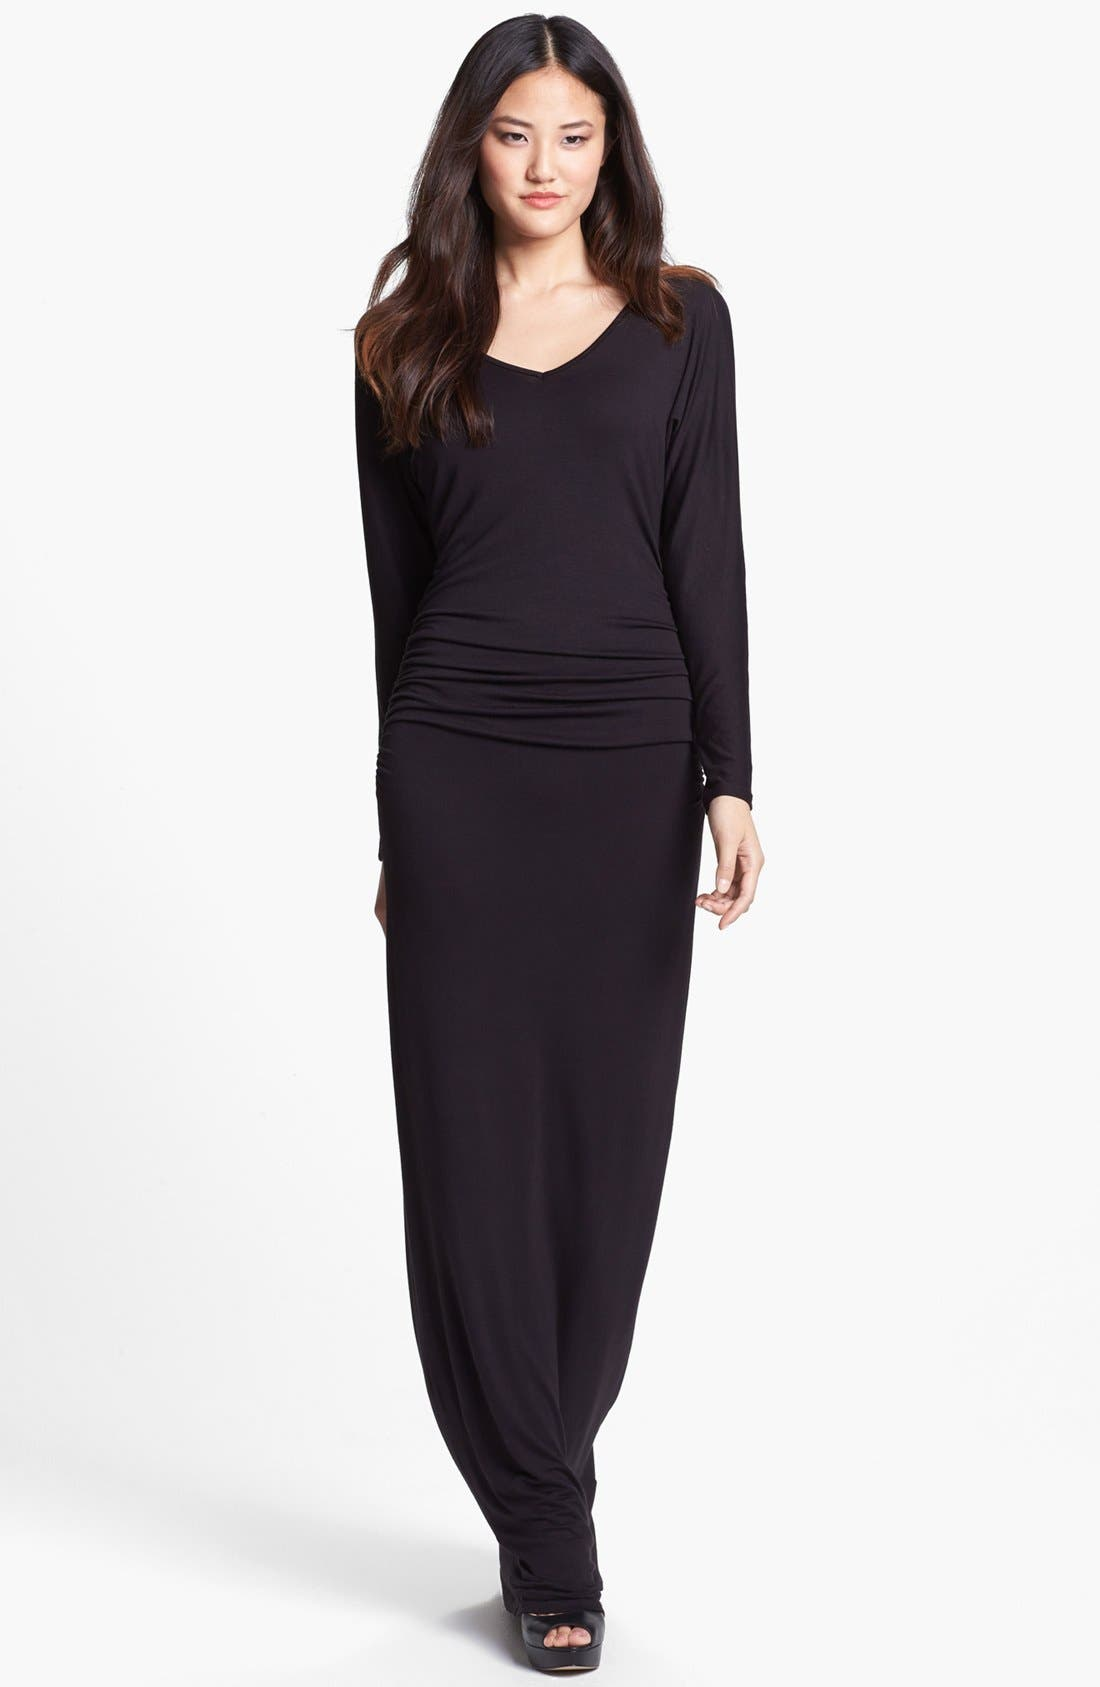 Alternate Image 1 Selected - Loveappella Dolman Sleeve Ruched Maxi Dress (Petite)